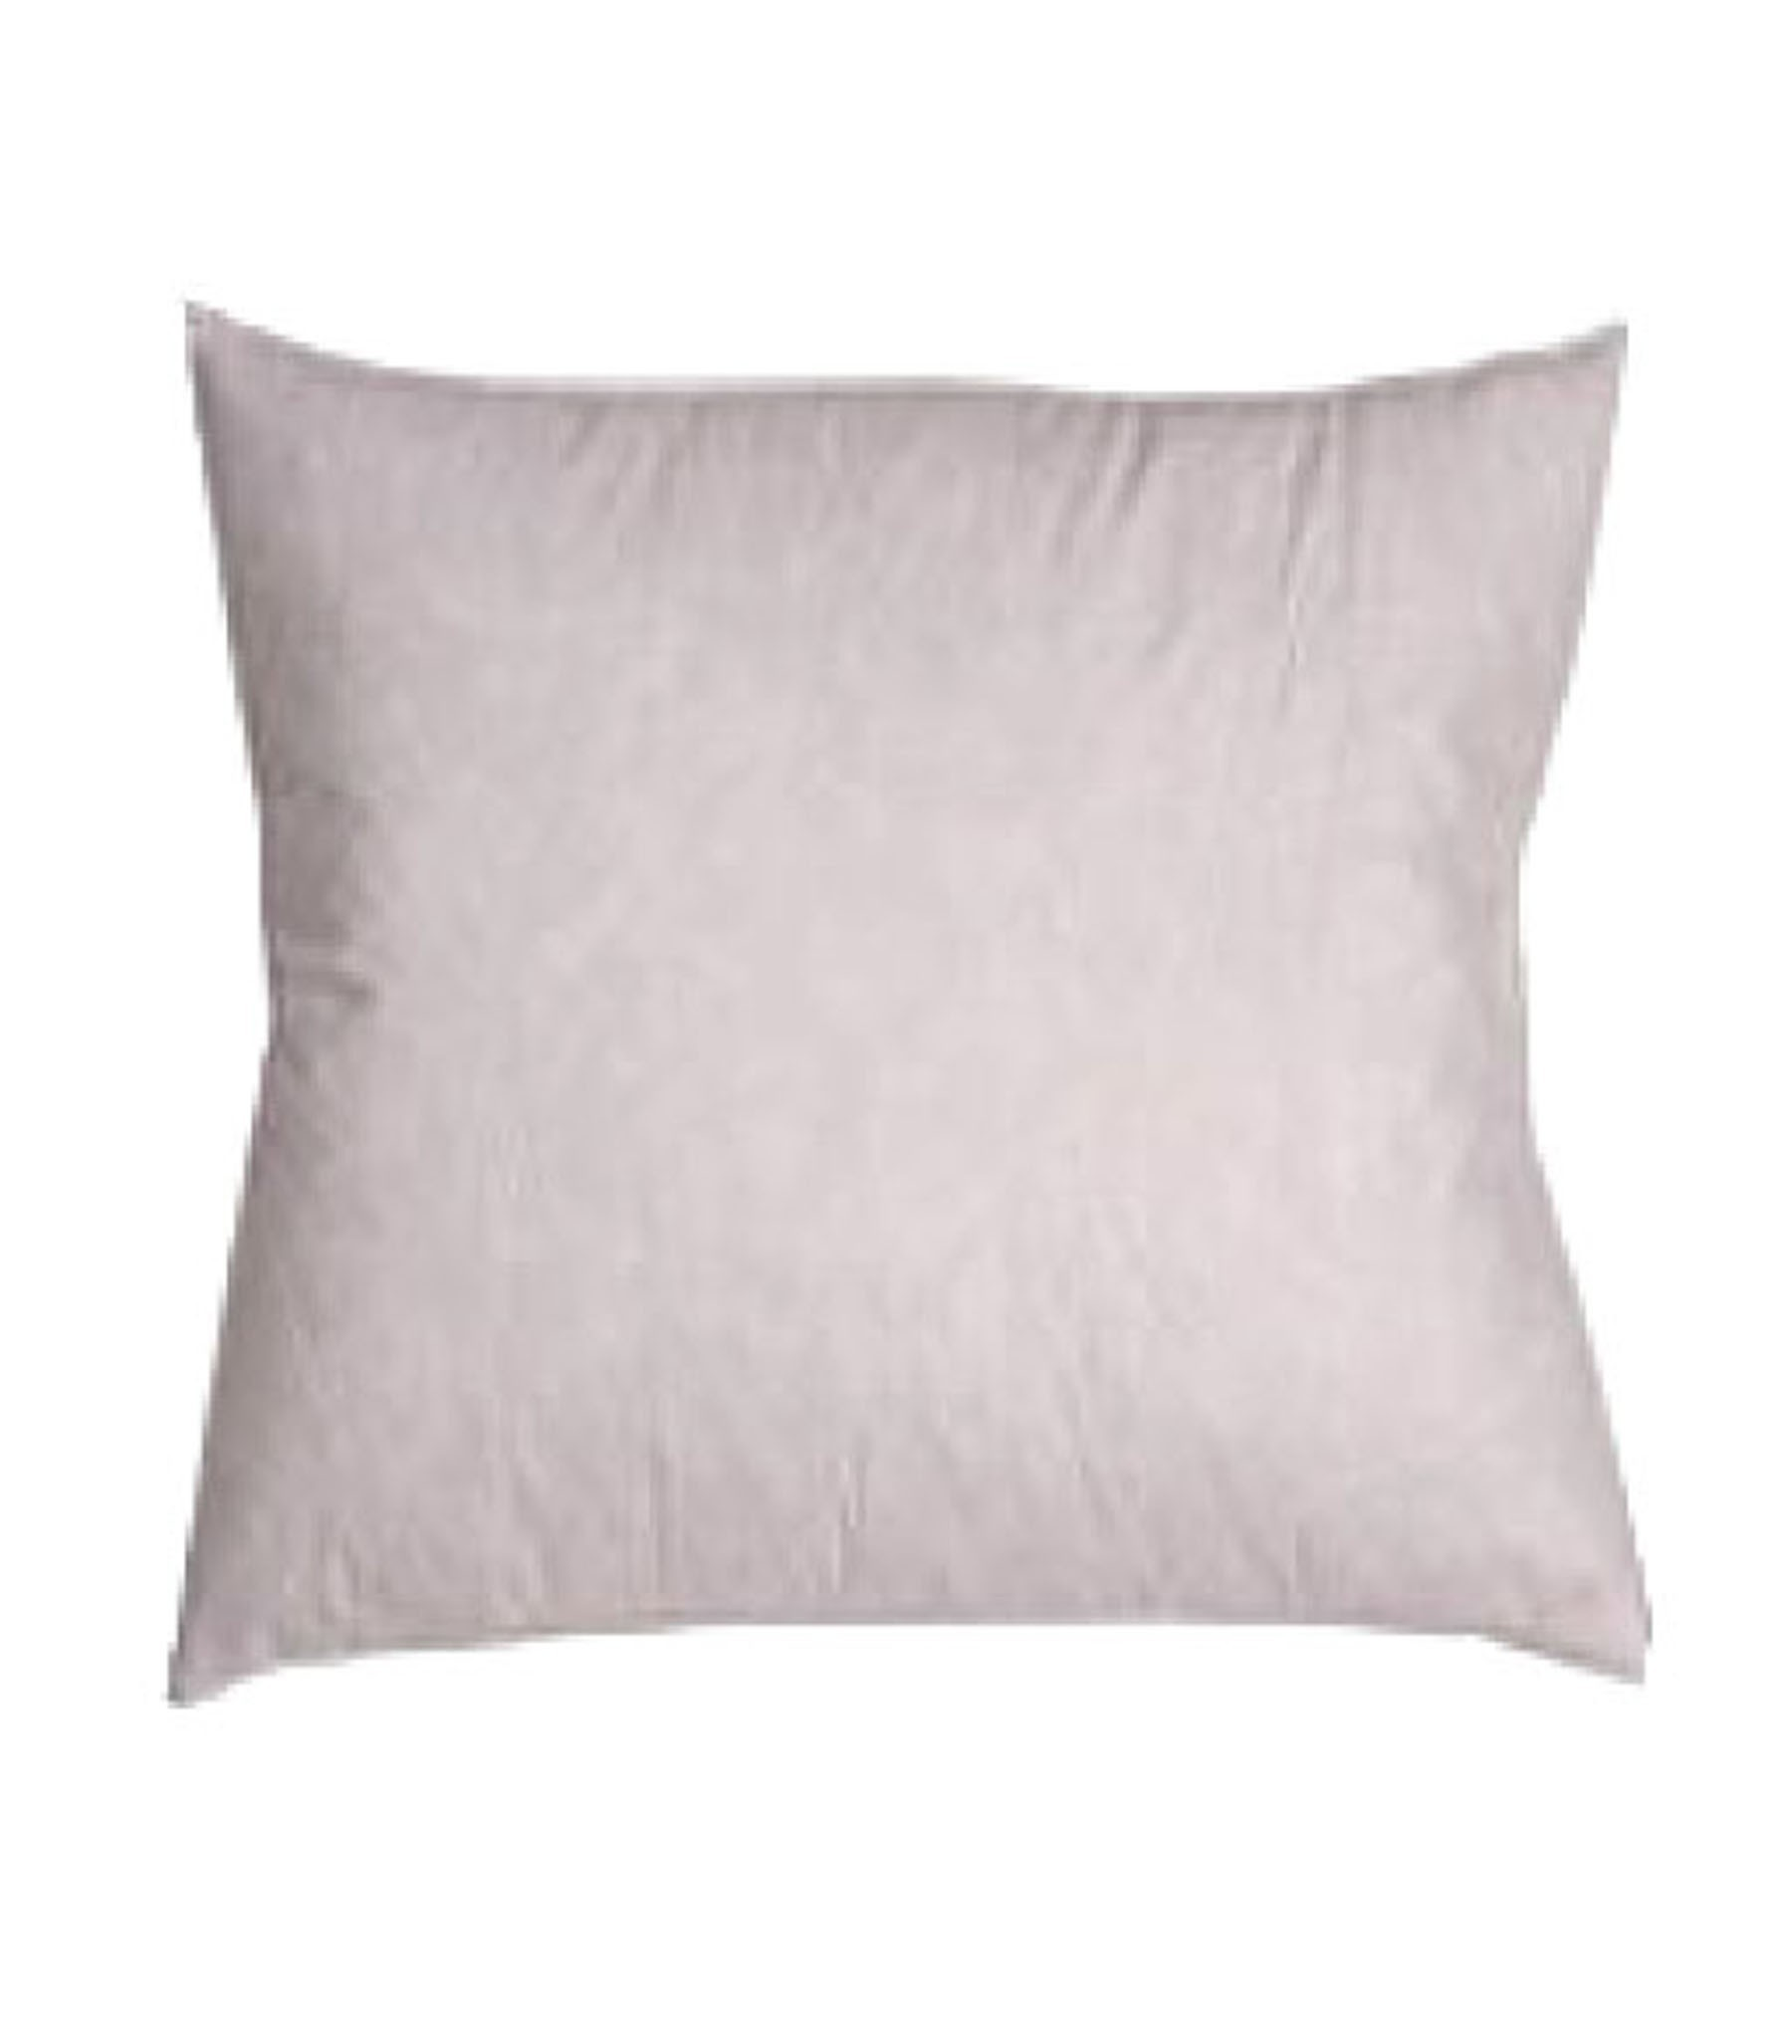 h form home kitchen square hypoallergenic amazon pillow insert l cushion acanva x com sham dp